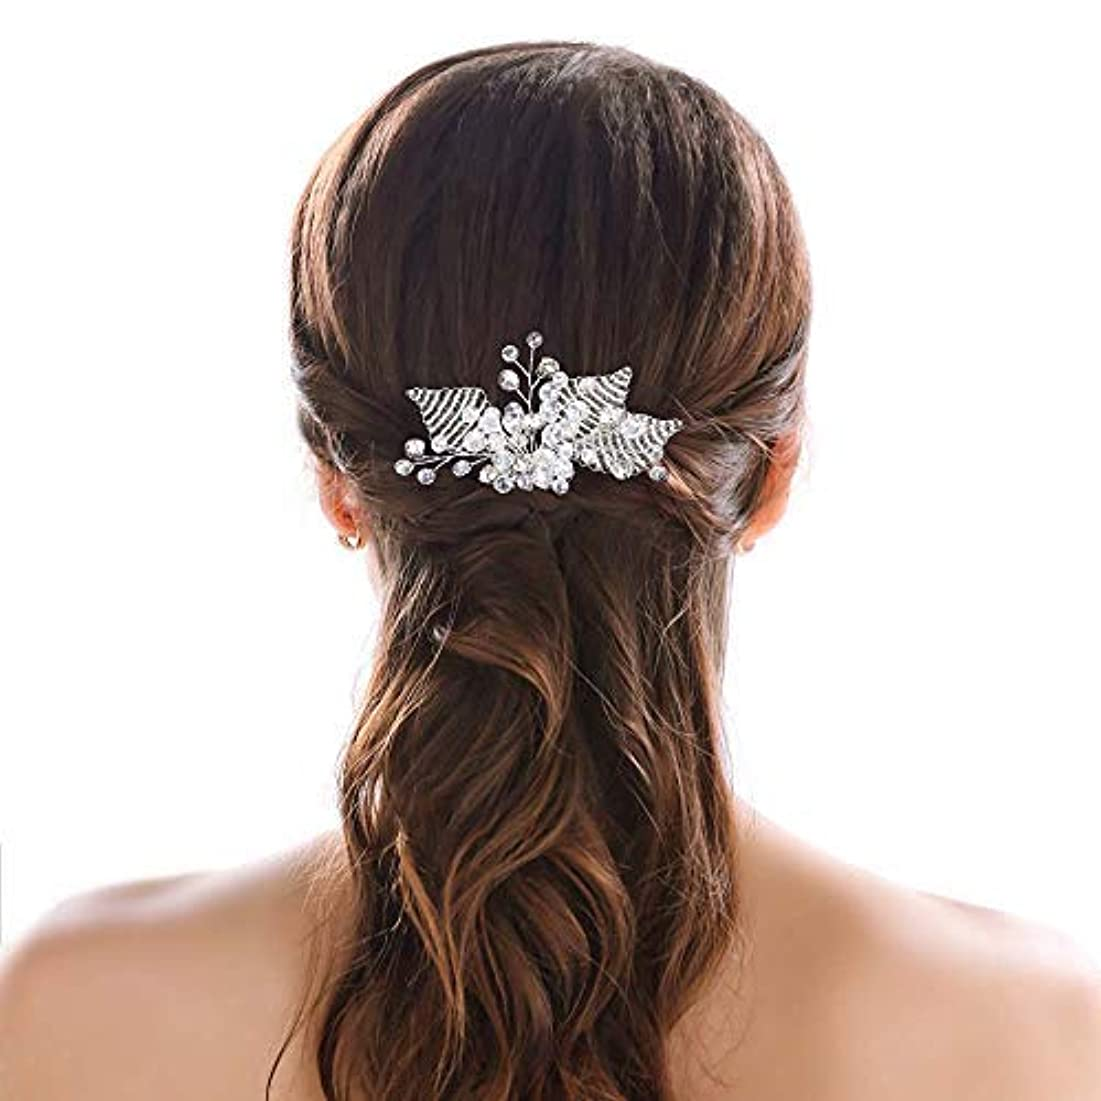 孤独な注釈を付けるマイルドJovono Bride Wedding Hair Comb Bridal Headpieces Beaded Rhinestone Hair Accessories for Women and Girls (Silver...